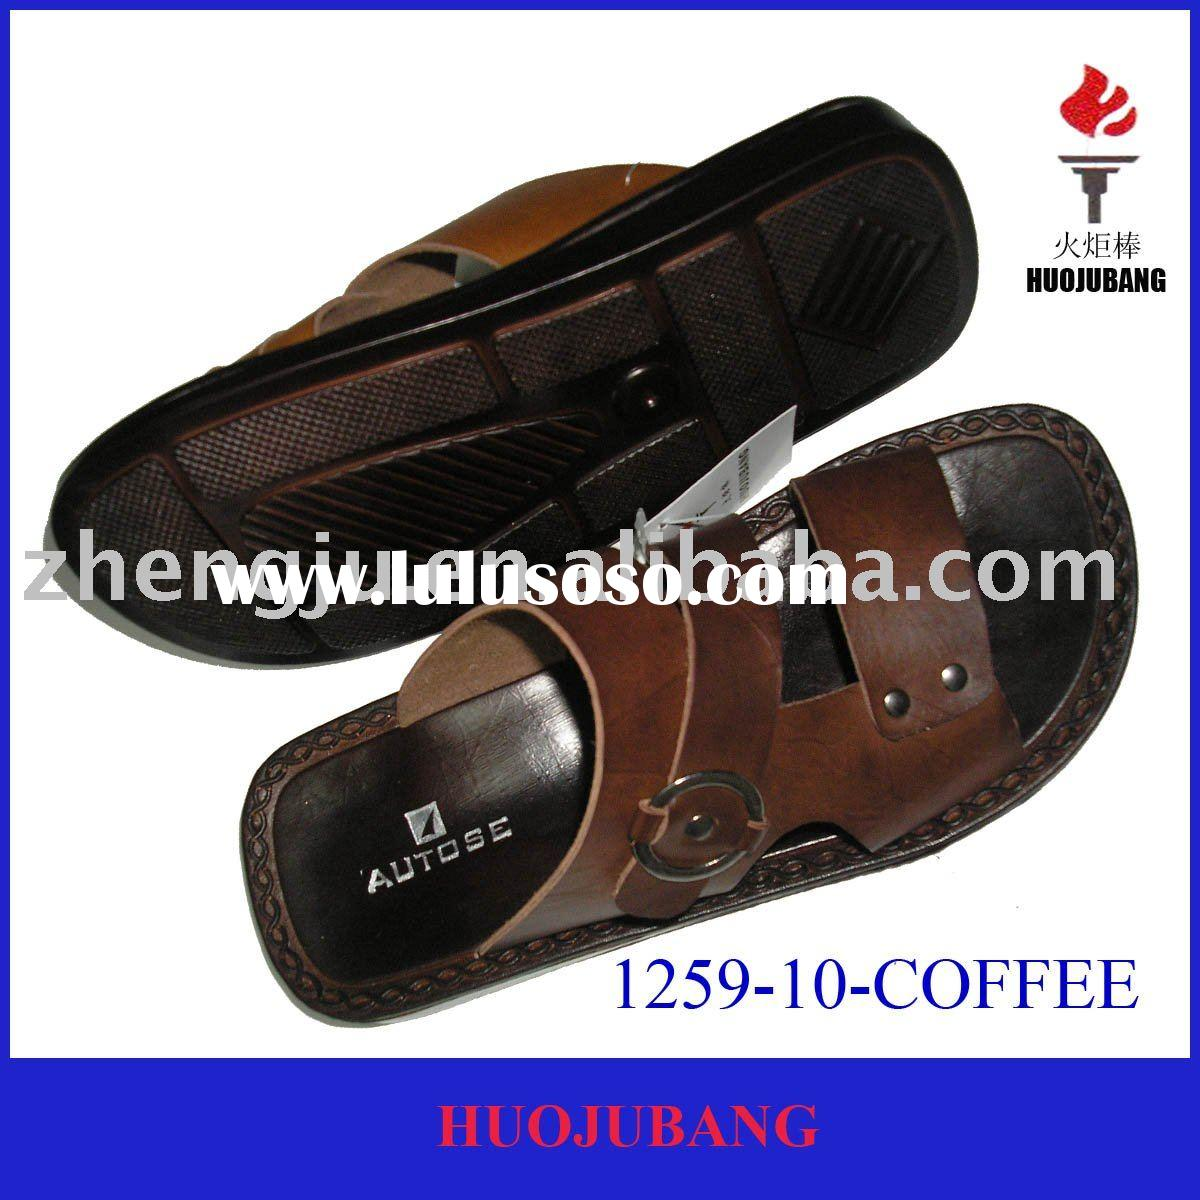 Men's footwear of 2nd leather with pu sole